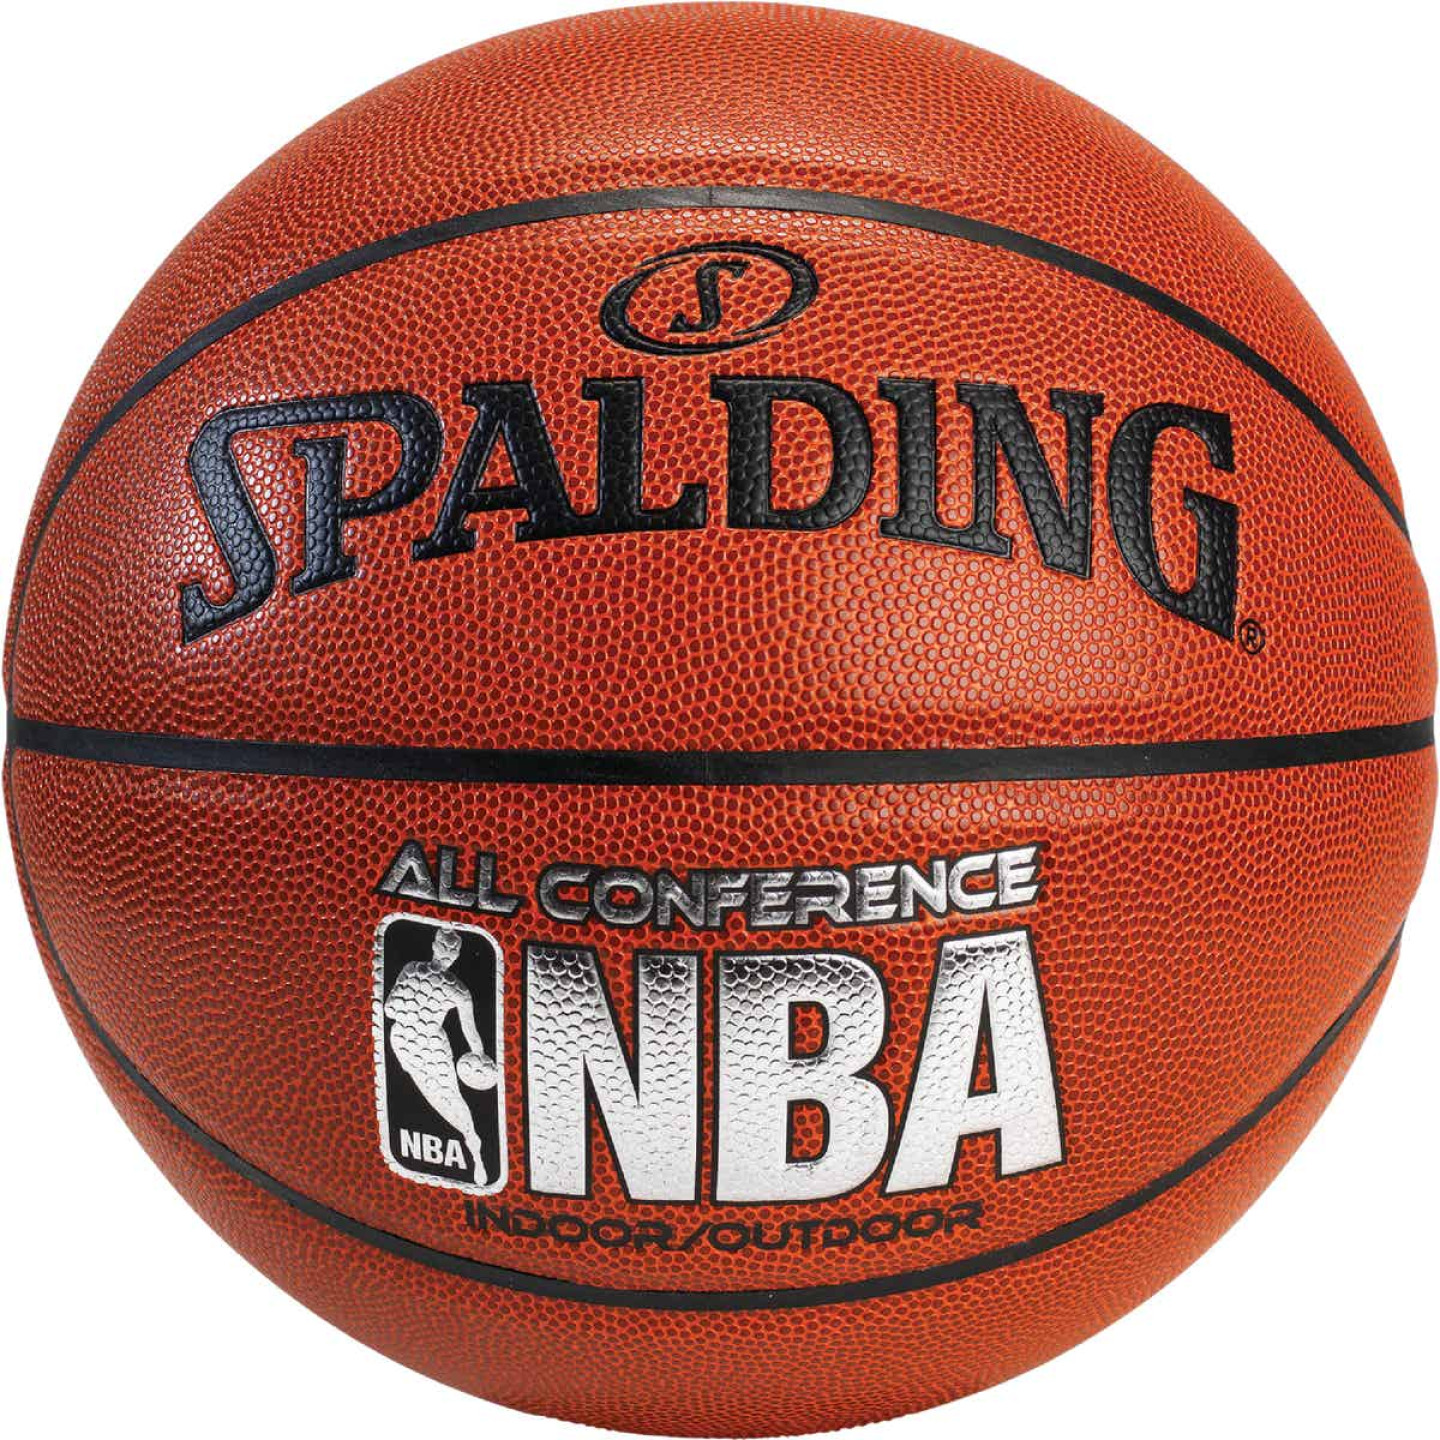 Spalding Indoor/Outdoor NBA All Conference Basketball, Official Size Image 1